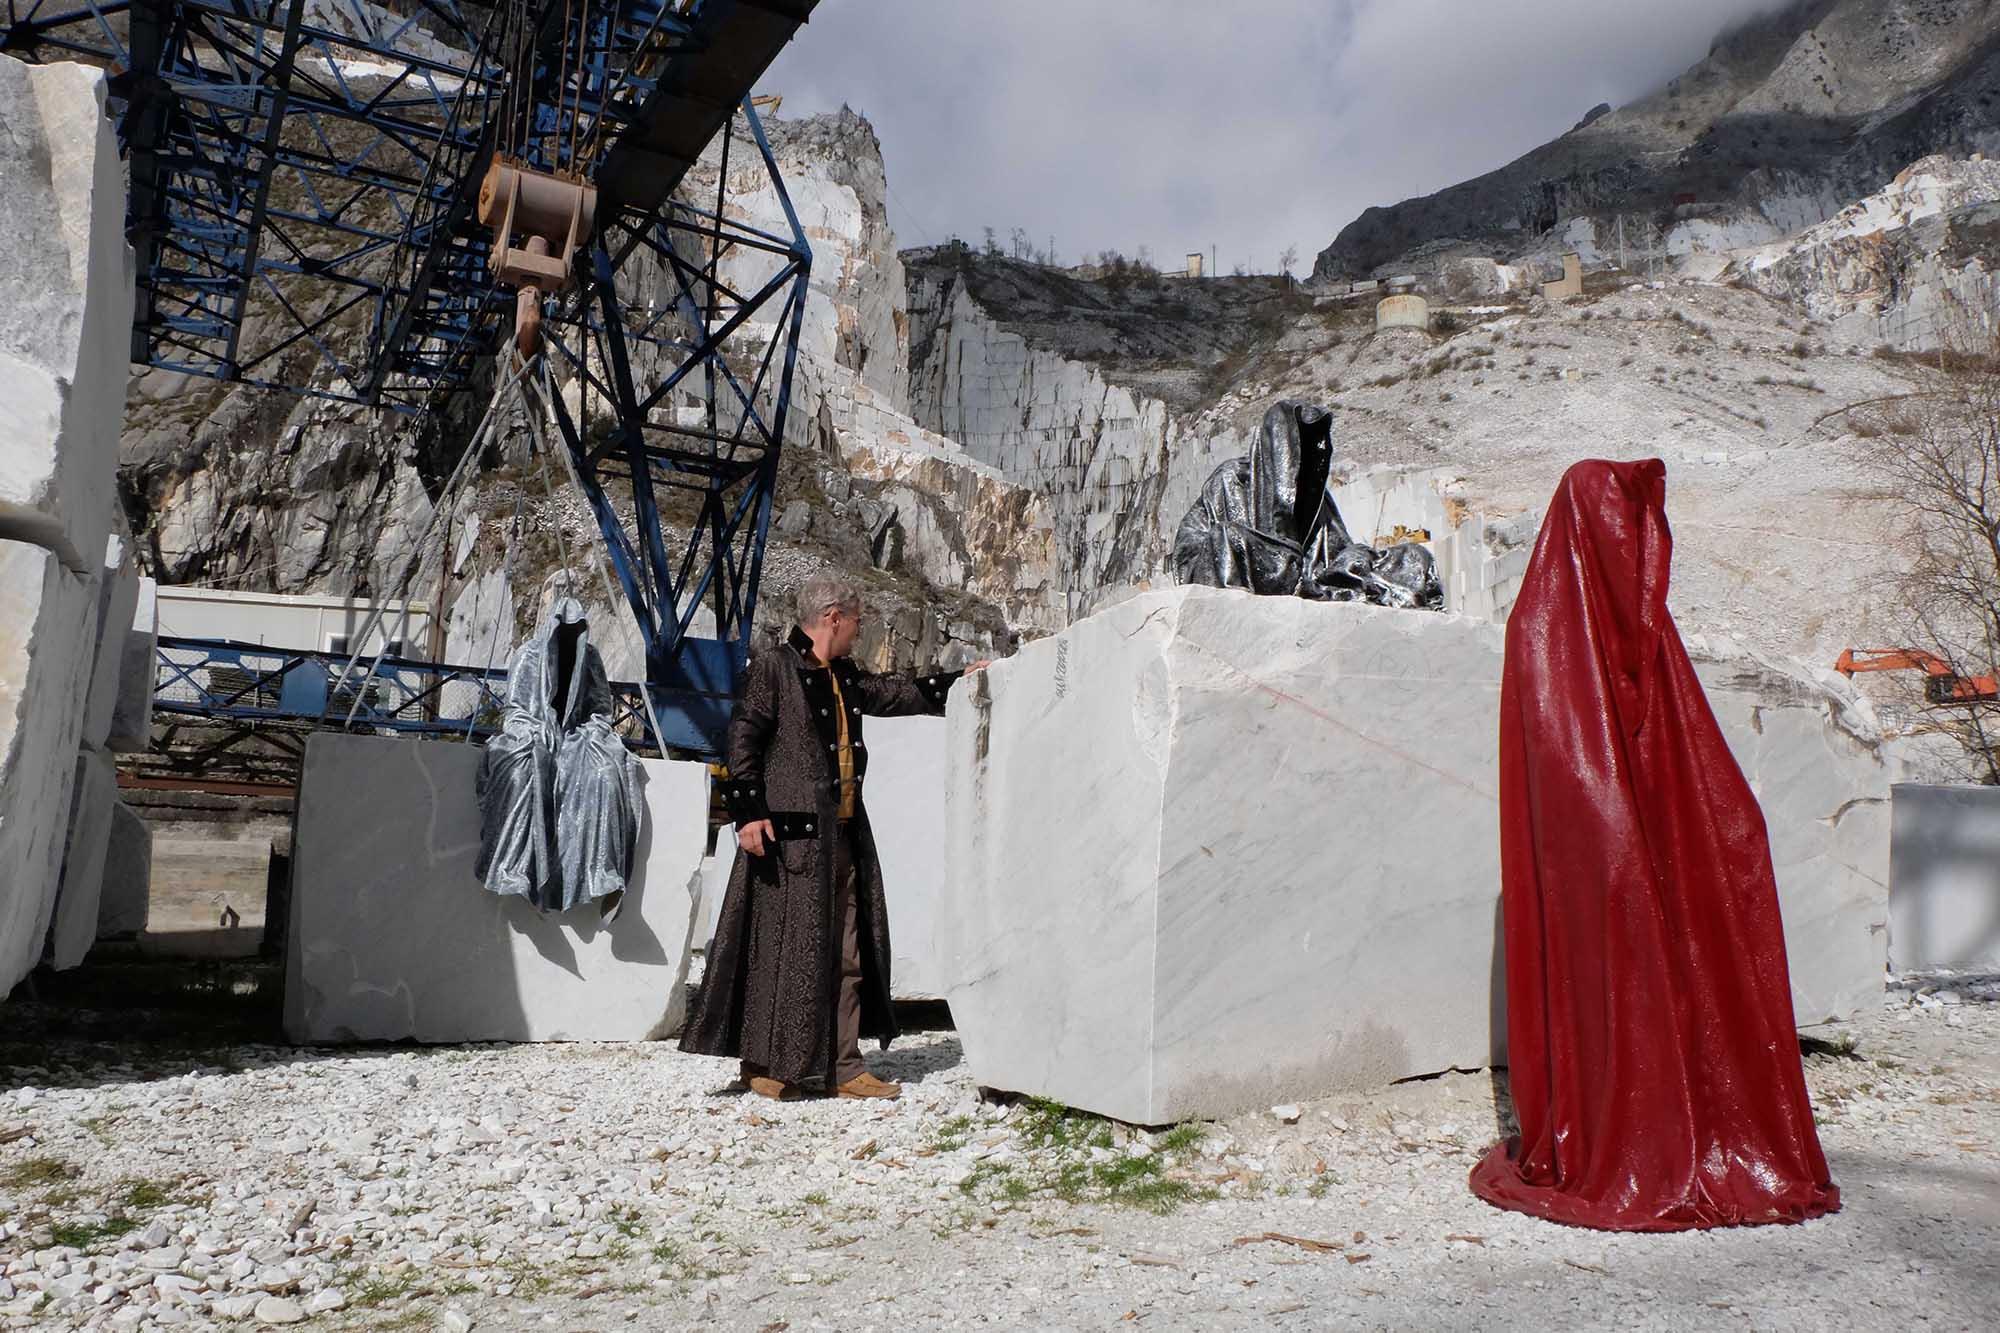 guardians of time manfred kili kielnhofer modern sculpture contemporary fine art design arts statue faceless religion stone marble carrara 1048